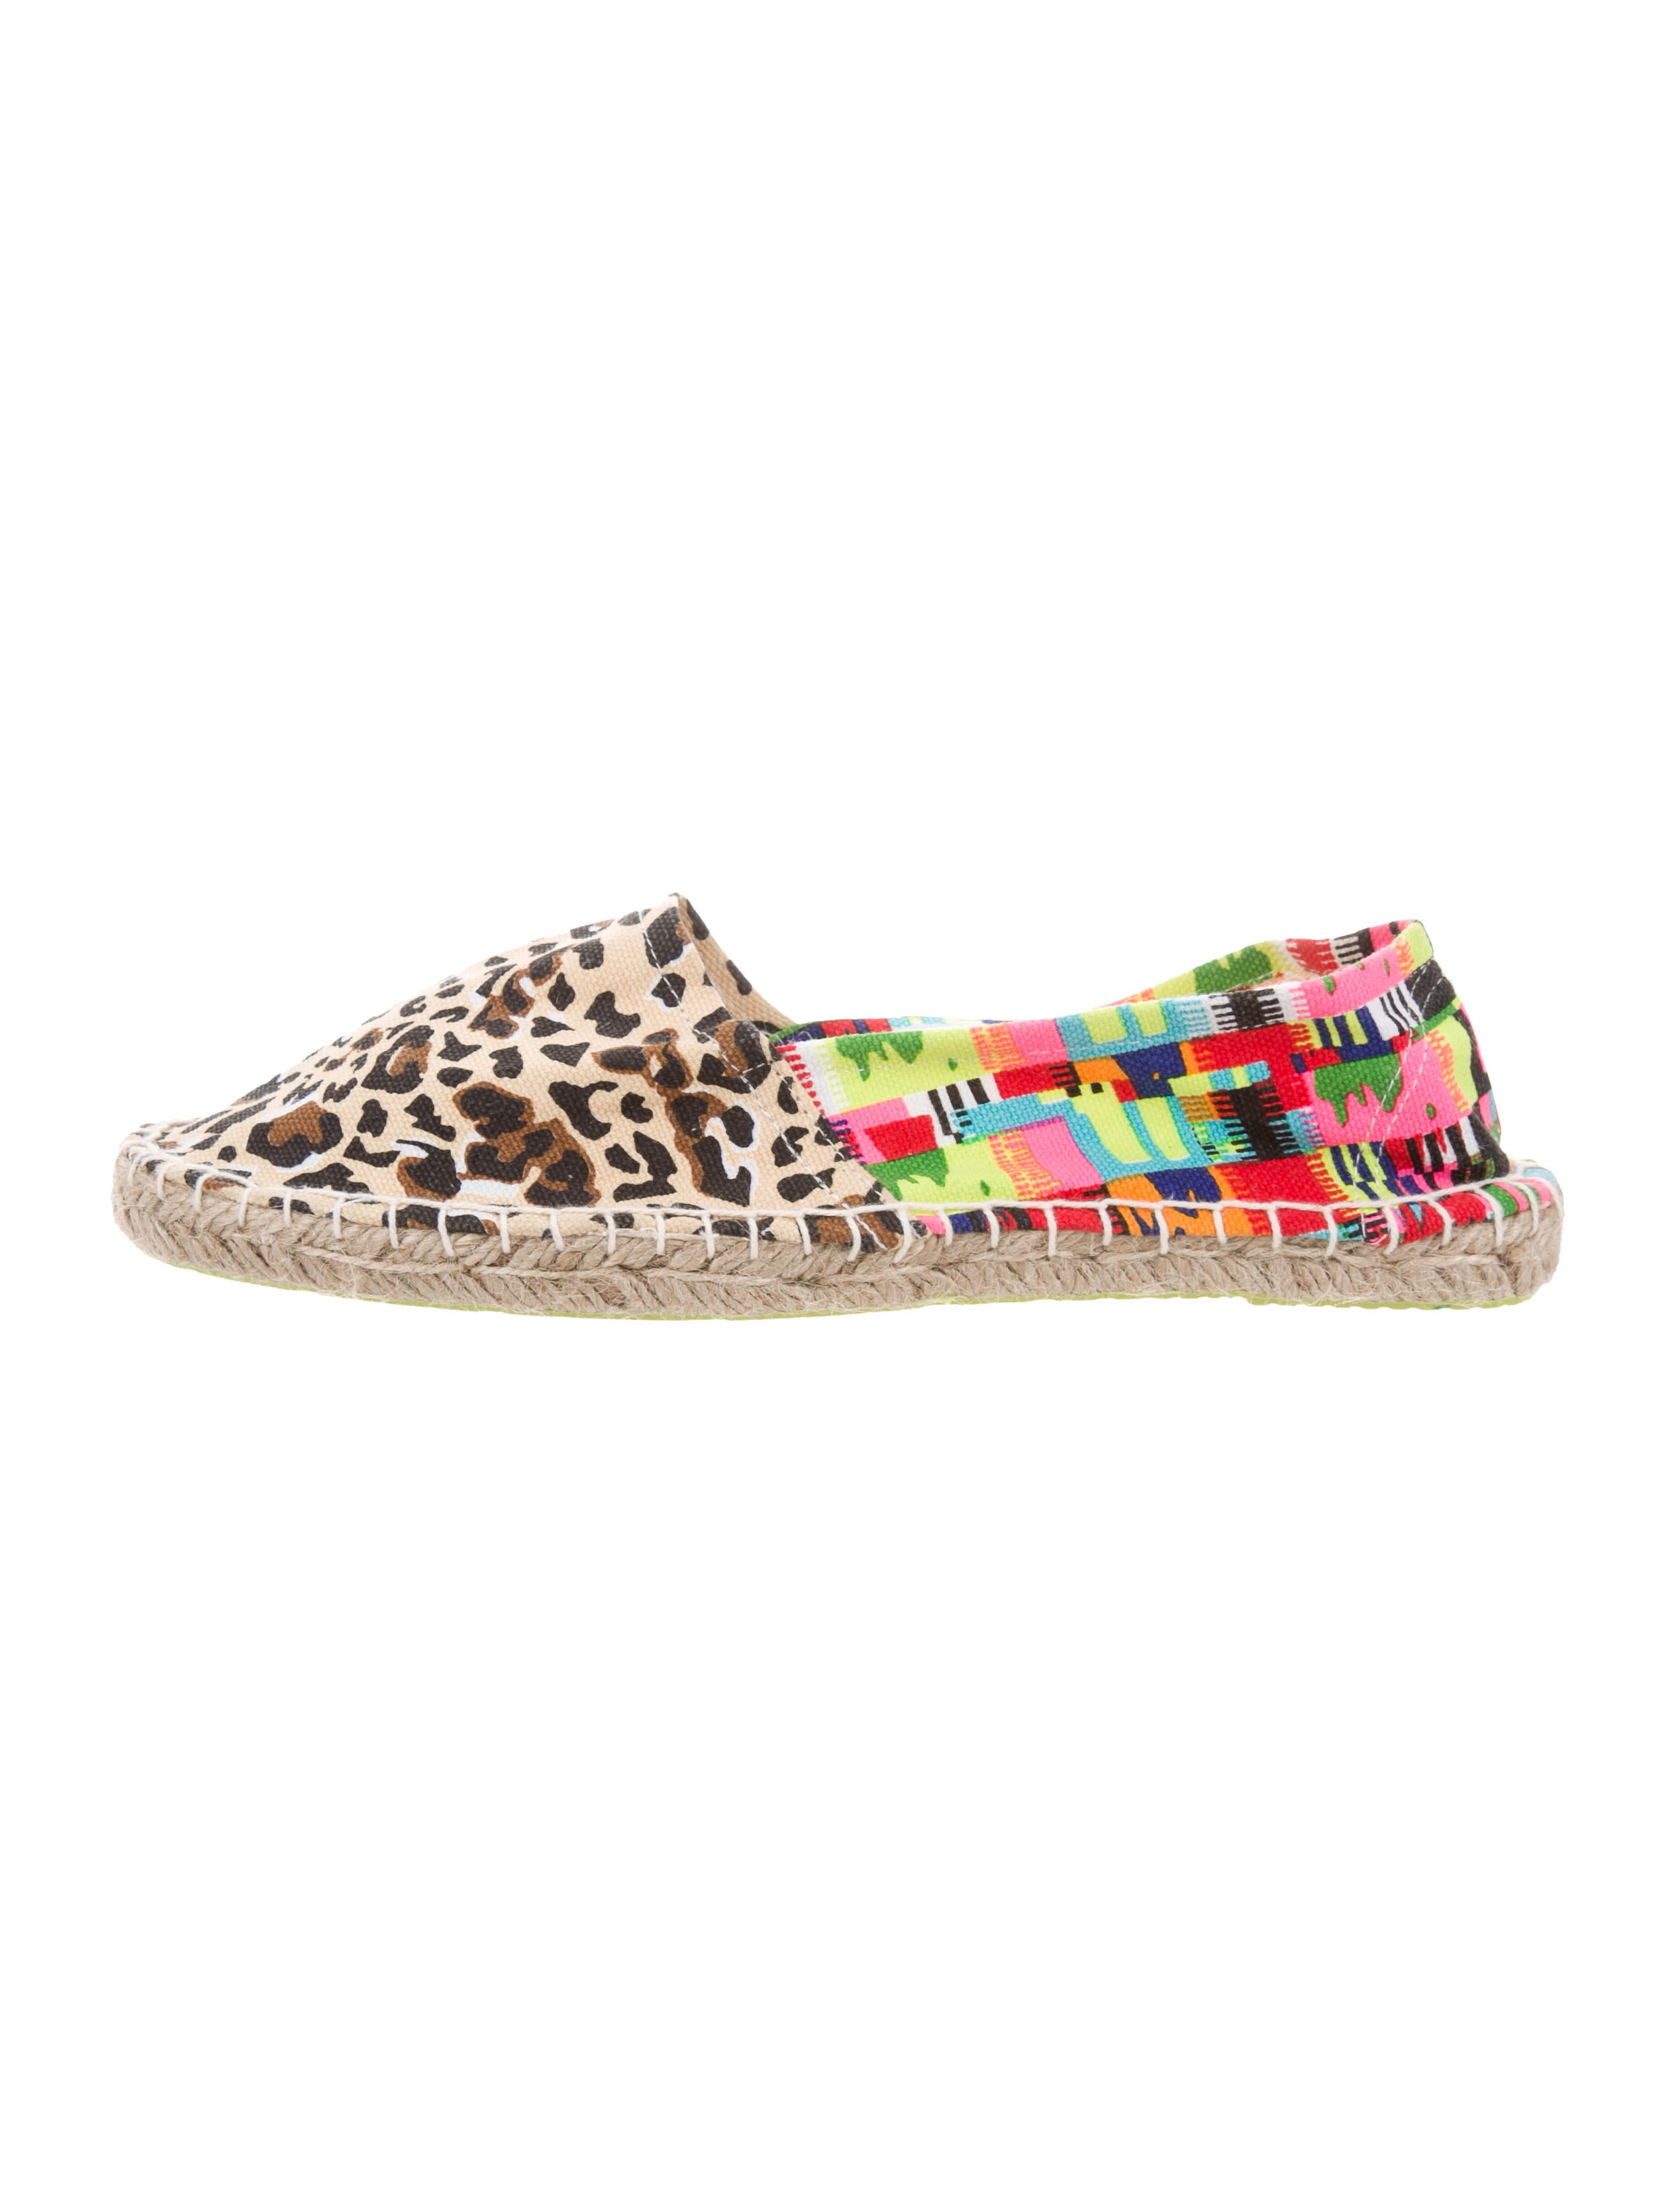 Mara Hoffman Printed Espadrille Flats discount new original sale online outlet with mastercard Gmb4zLySr